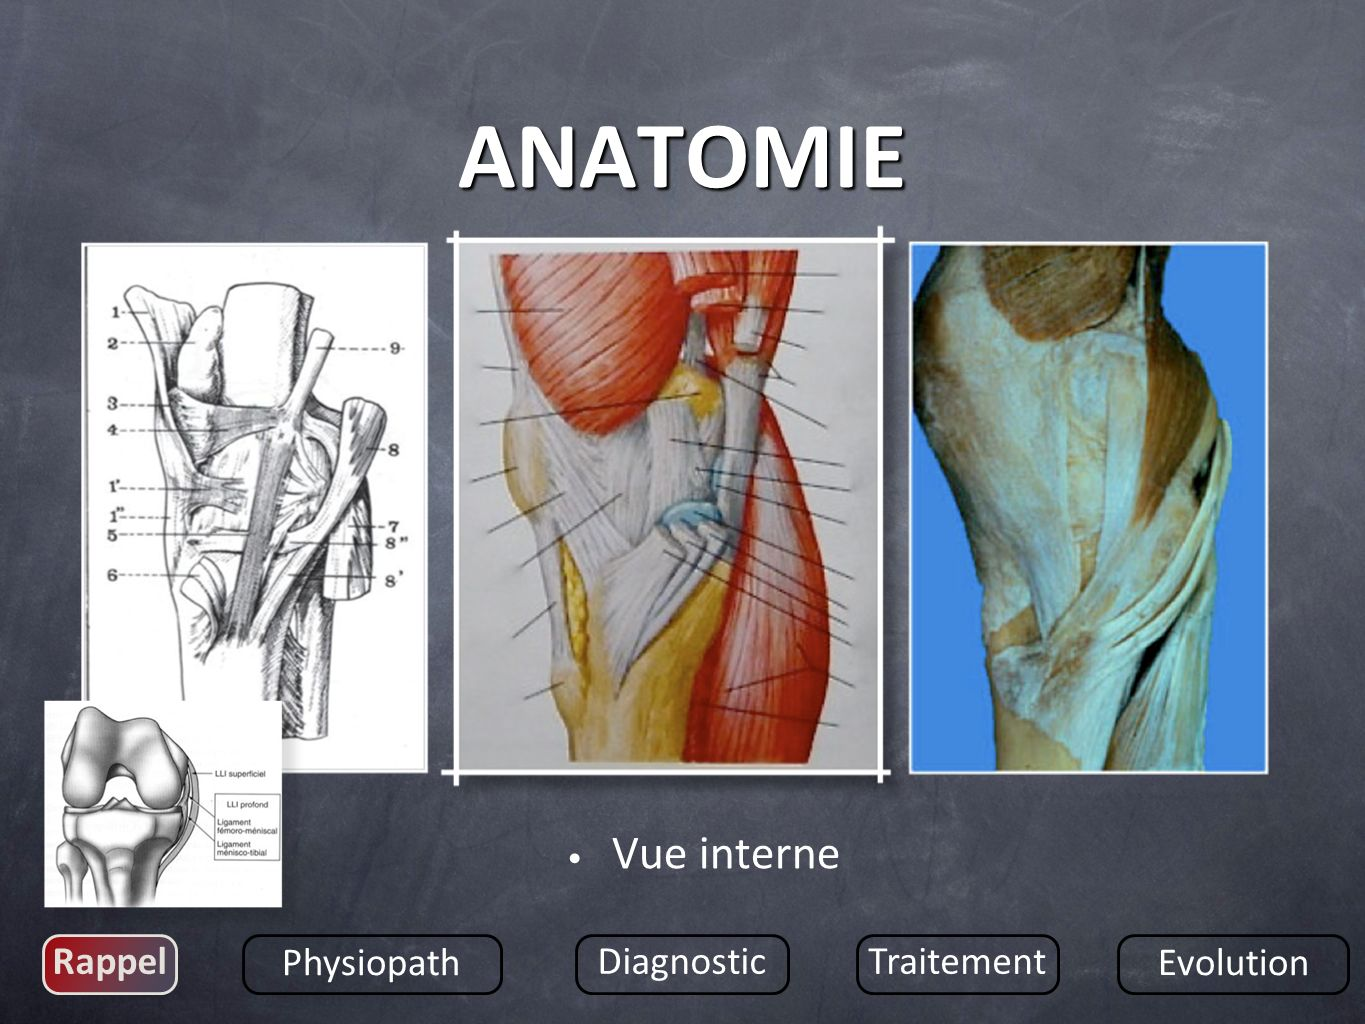 ANATOMIE Vue interne Rappel Physiopath Diagnostic Traitement Evolution